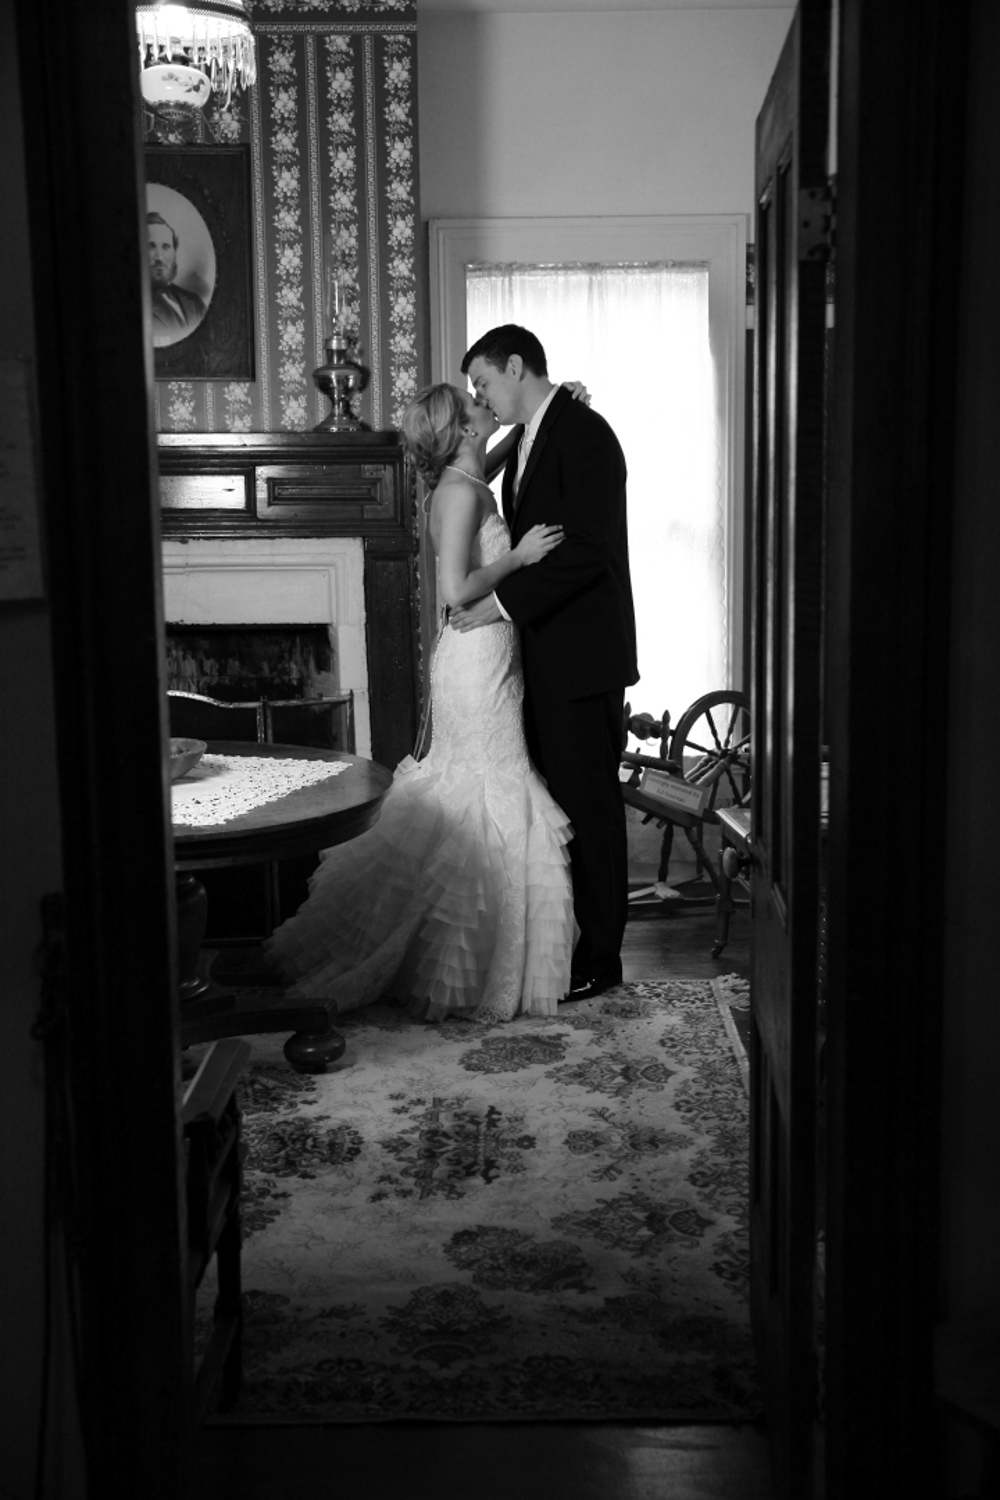 Wedding Photos Centrillia Washington11.jpg